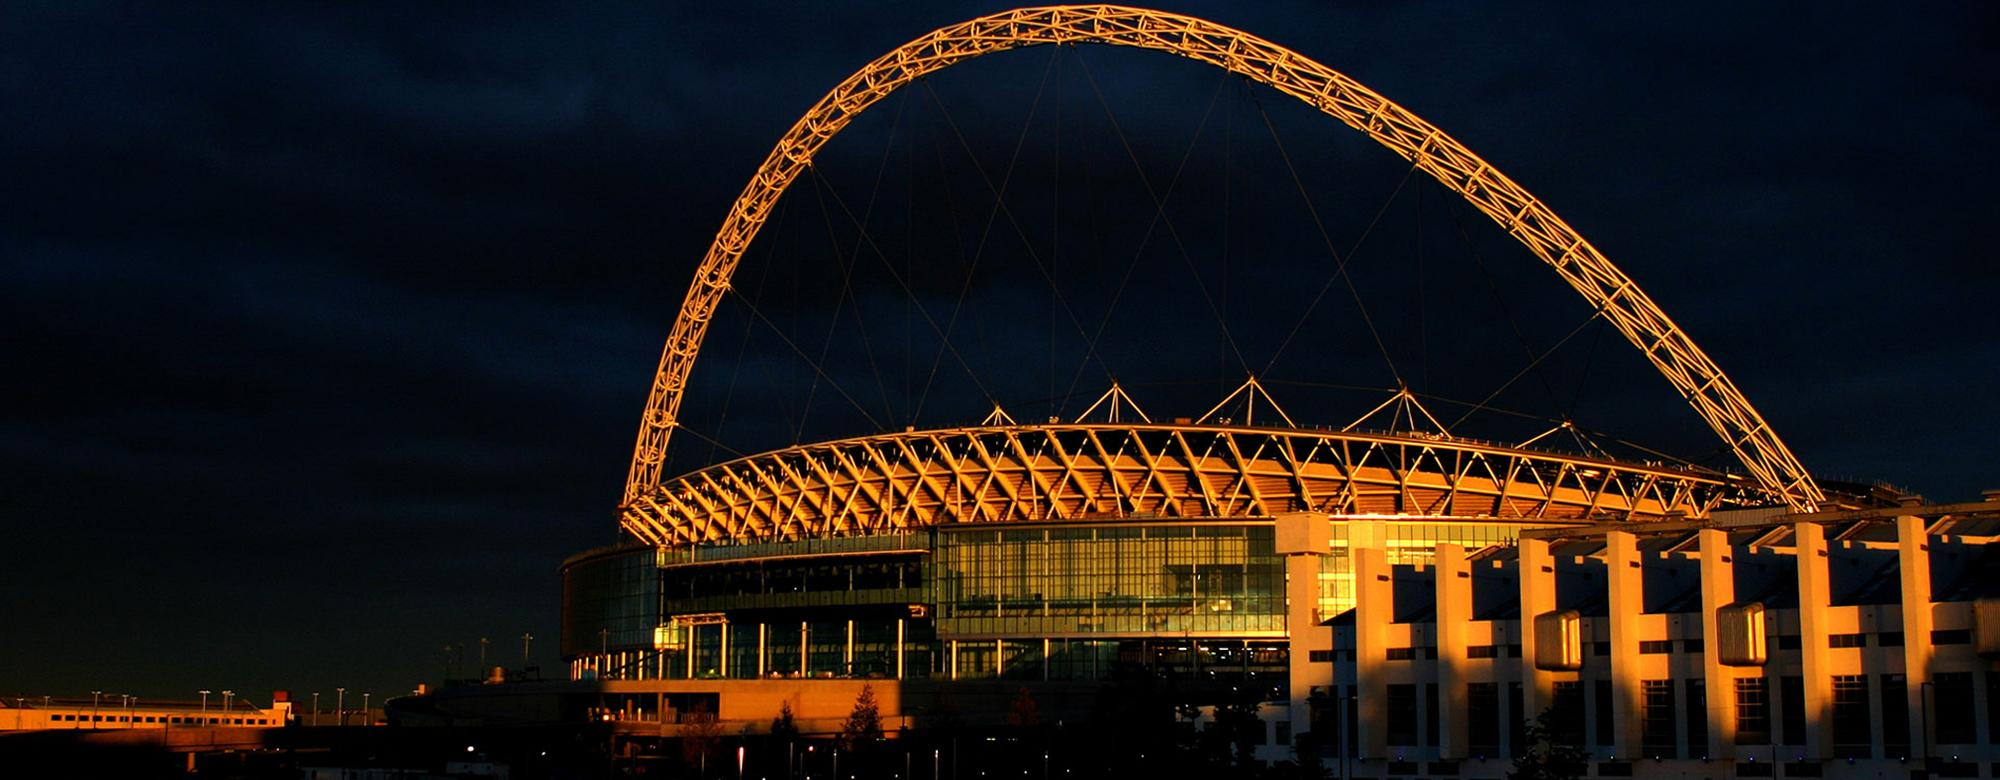 Wembley Stadium Exterior